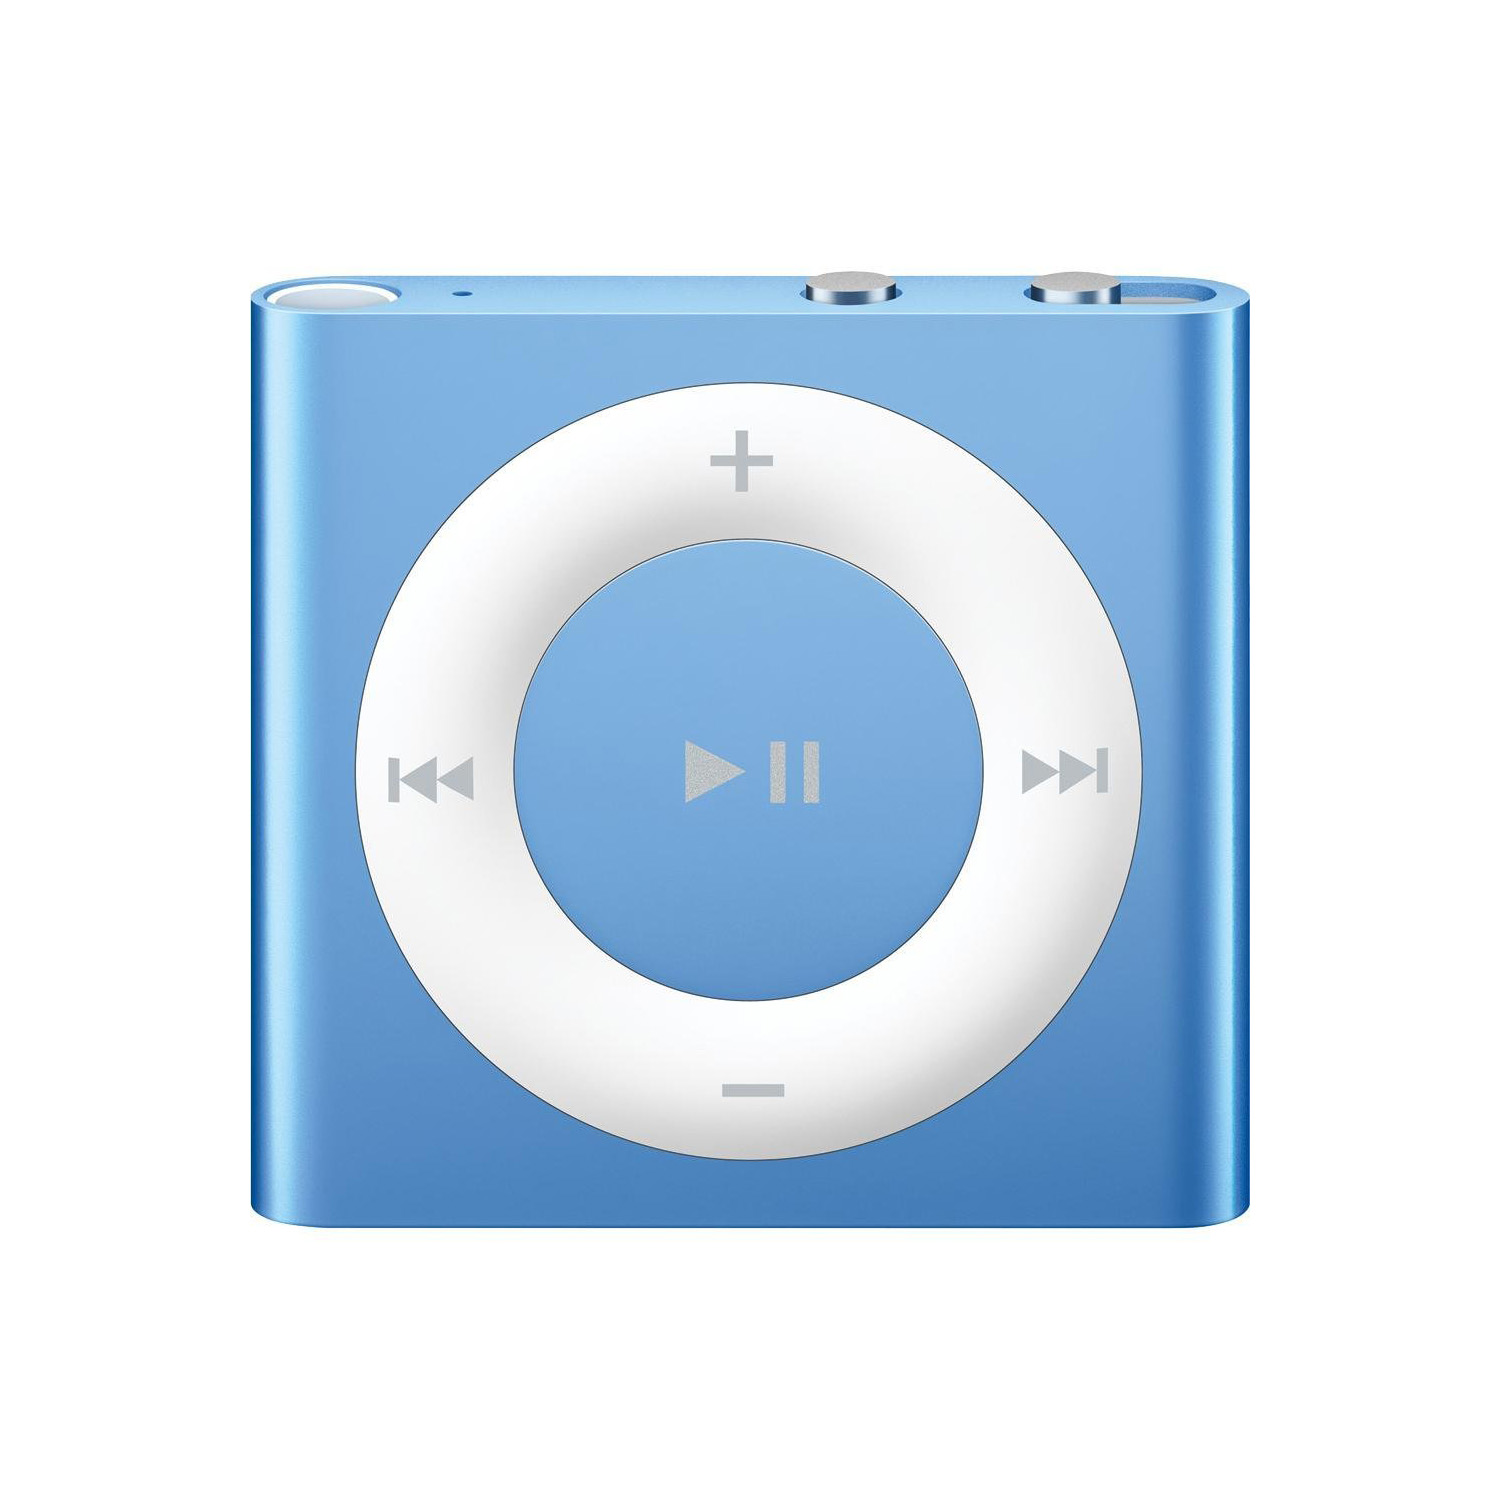 Apple IPod Shuffle 2GB 4th Generation Rechargeable ITunes